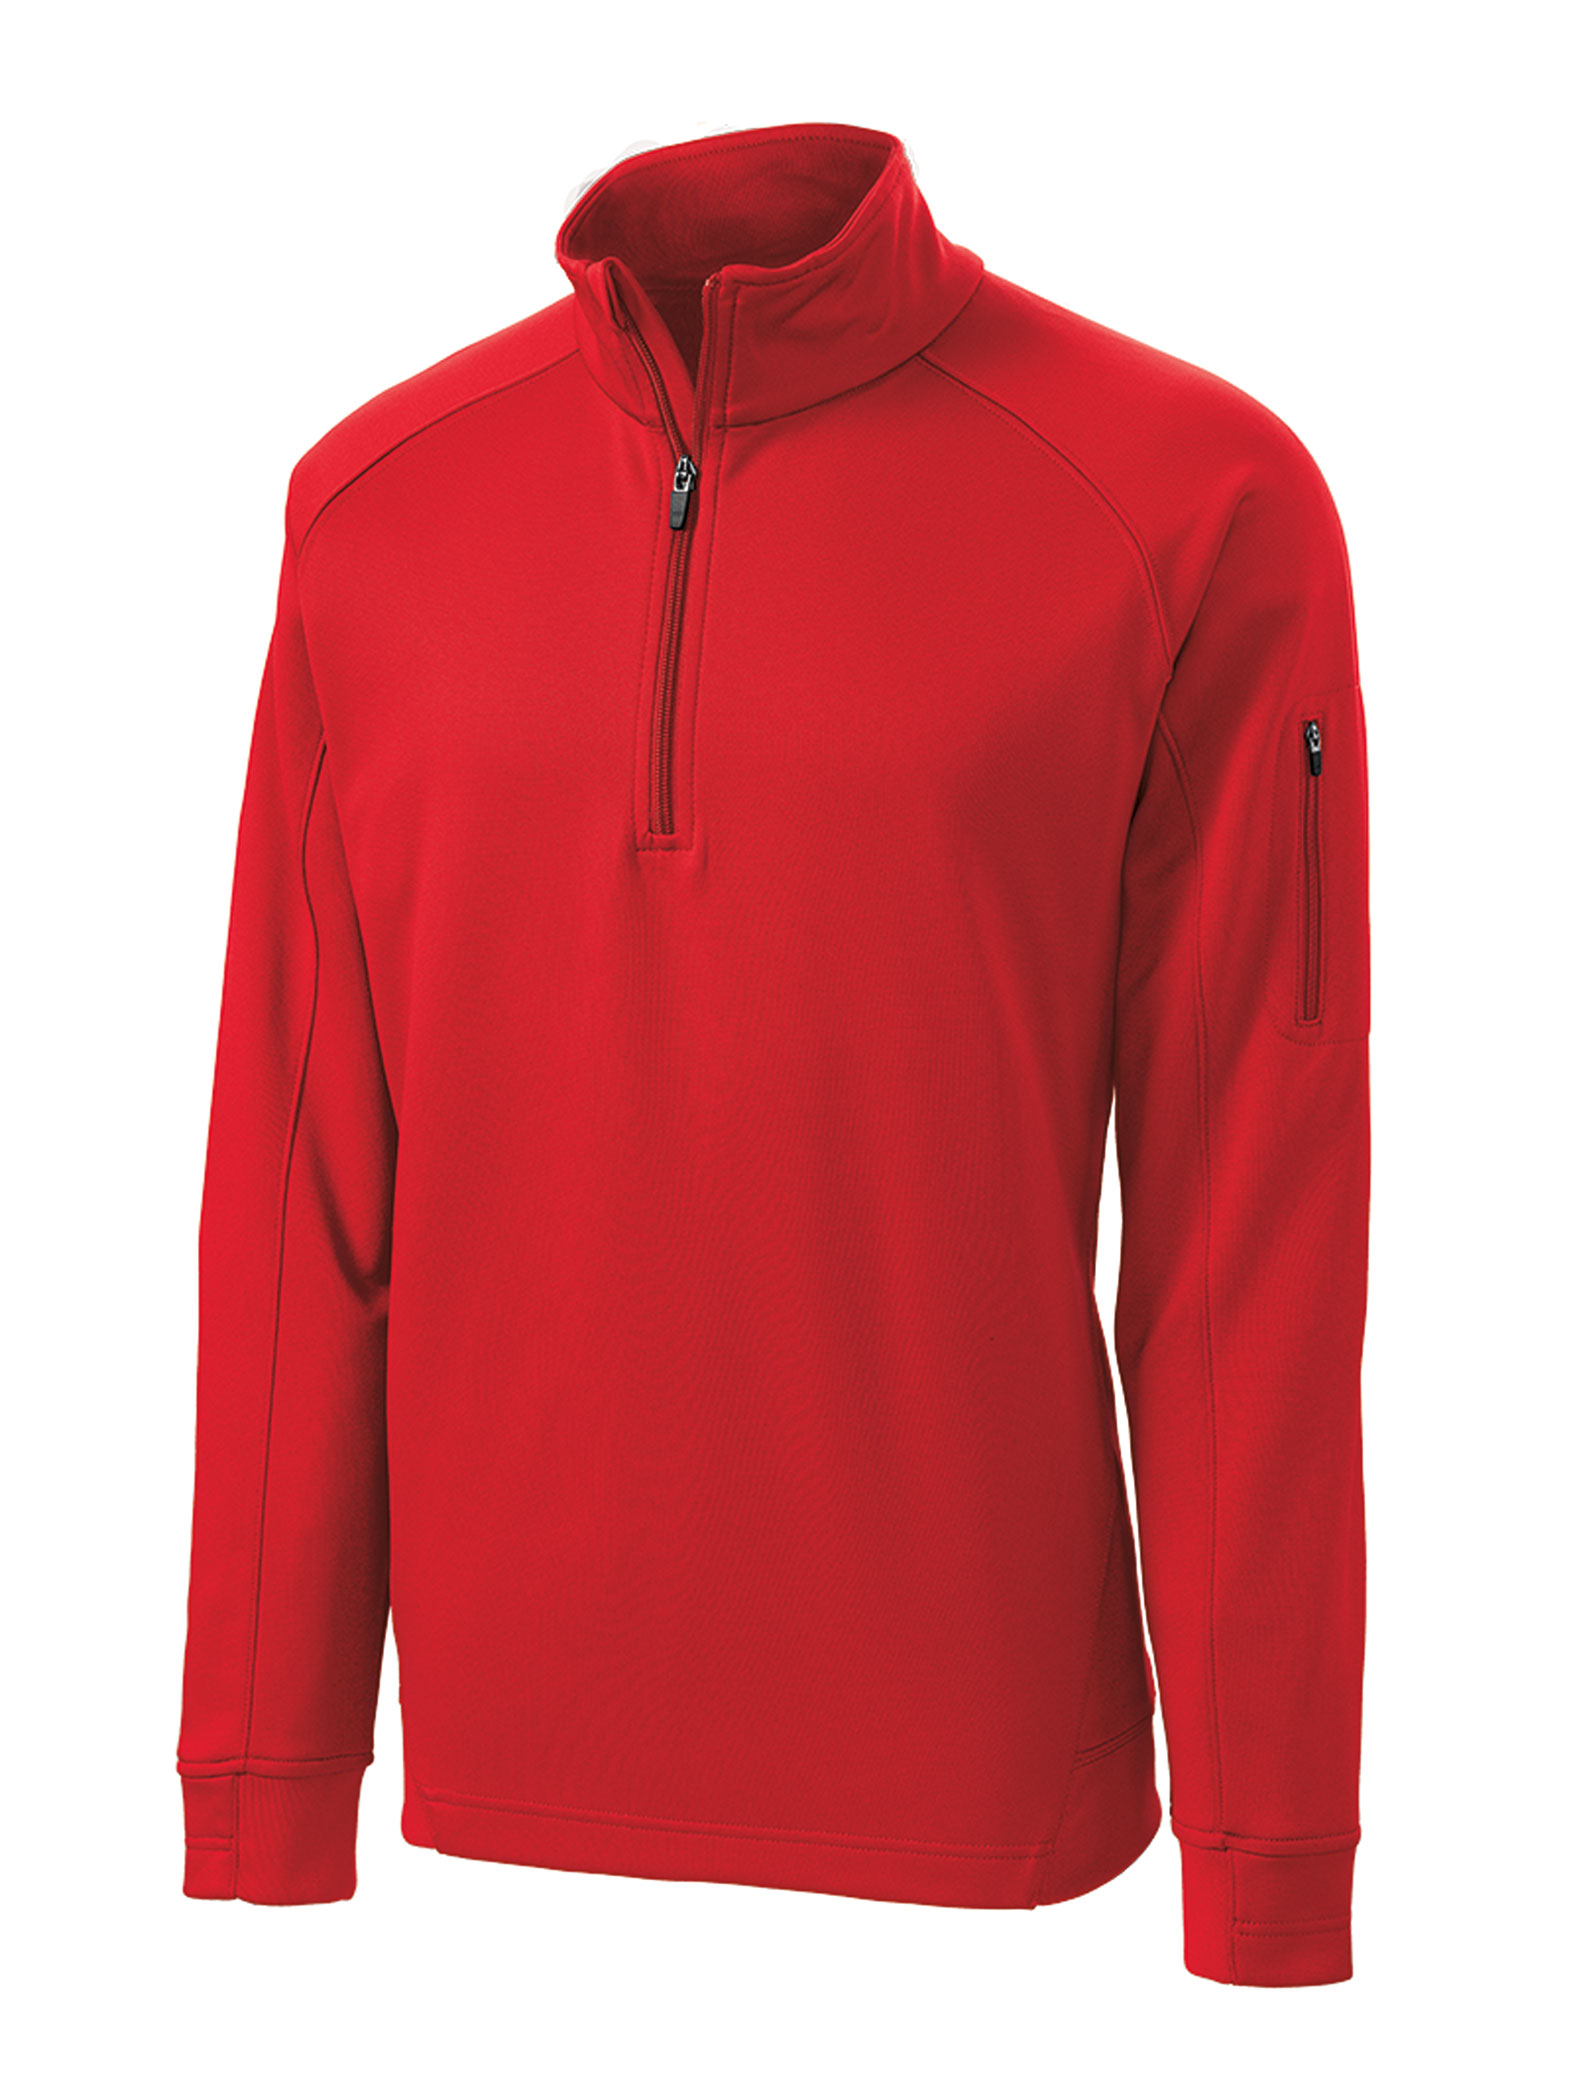 Mens Tech Fleece 1/4-Zip Pullover